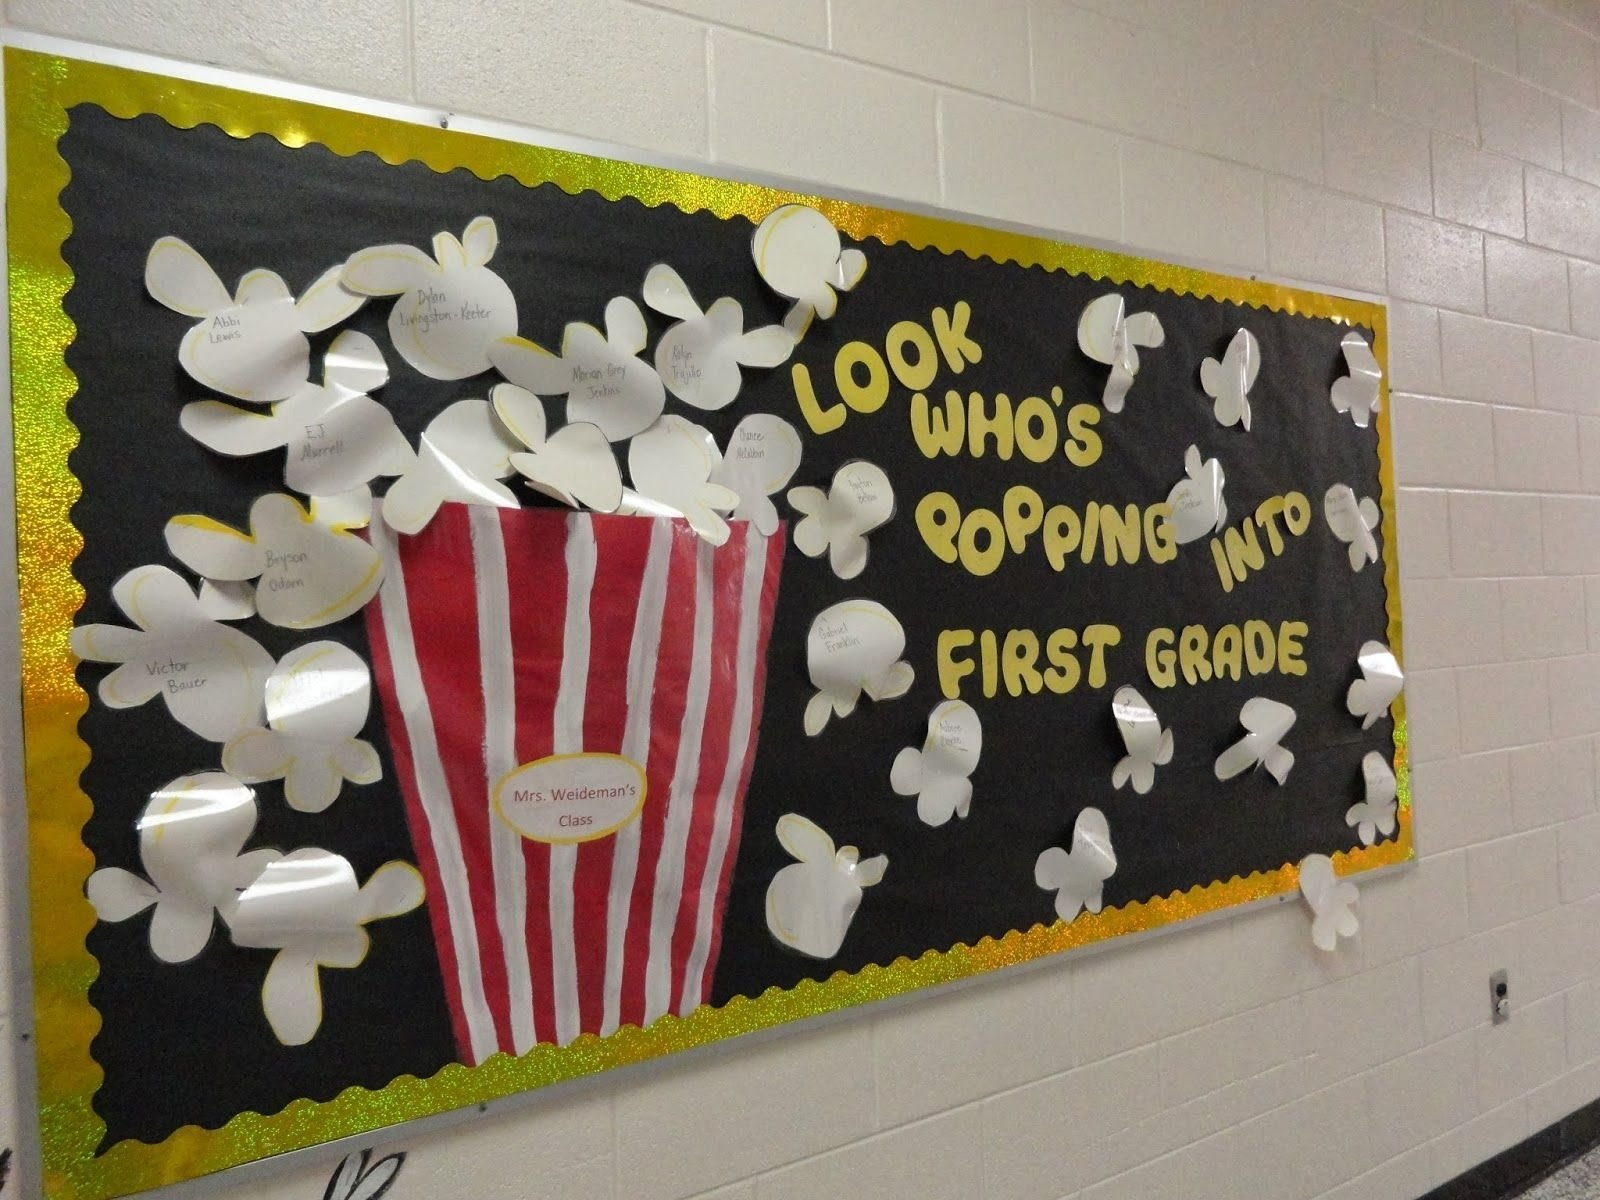 10 Most Recommended Beginning Of School Year Bulletin Board Ideas usually at the beginning of the school year each teacher has a 2020